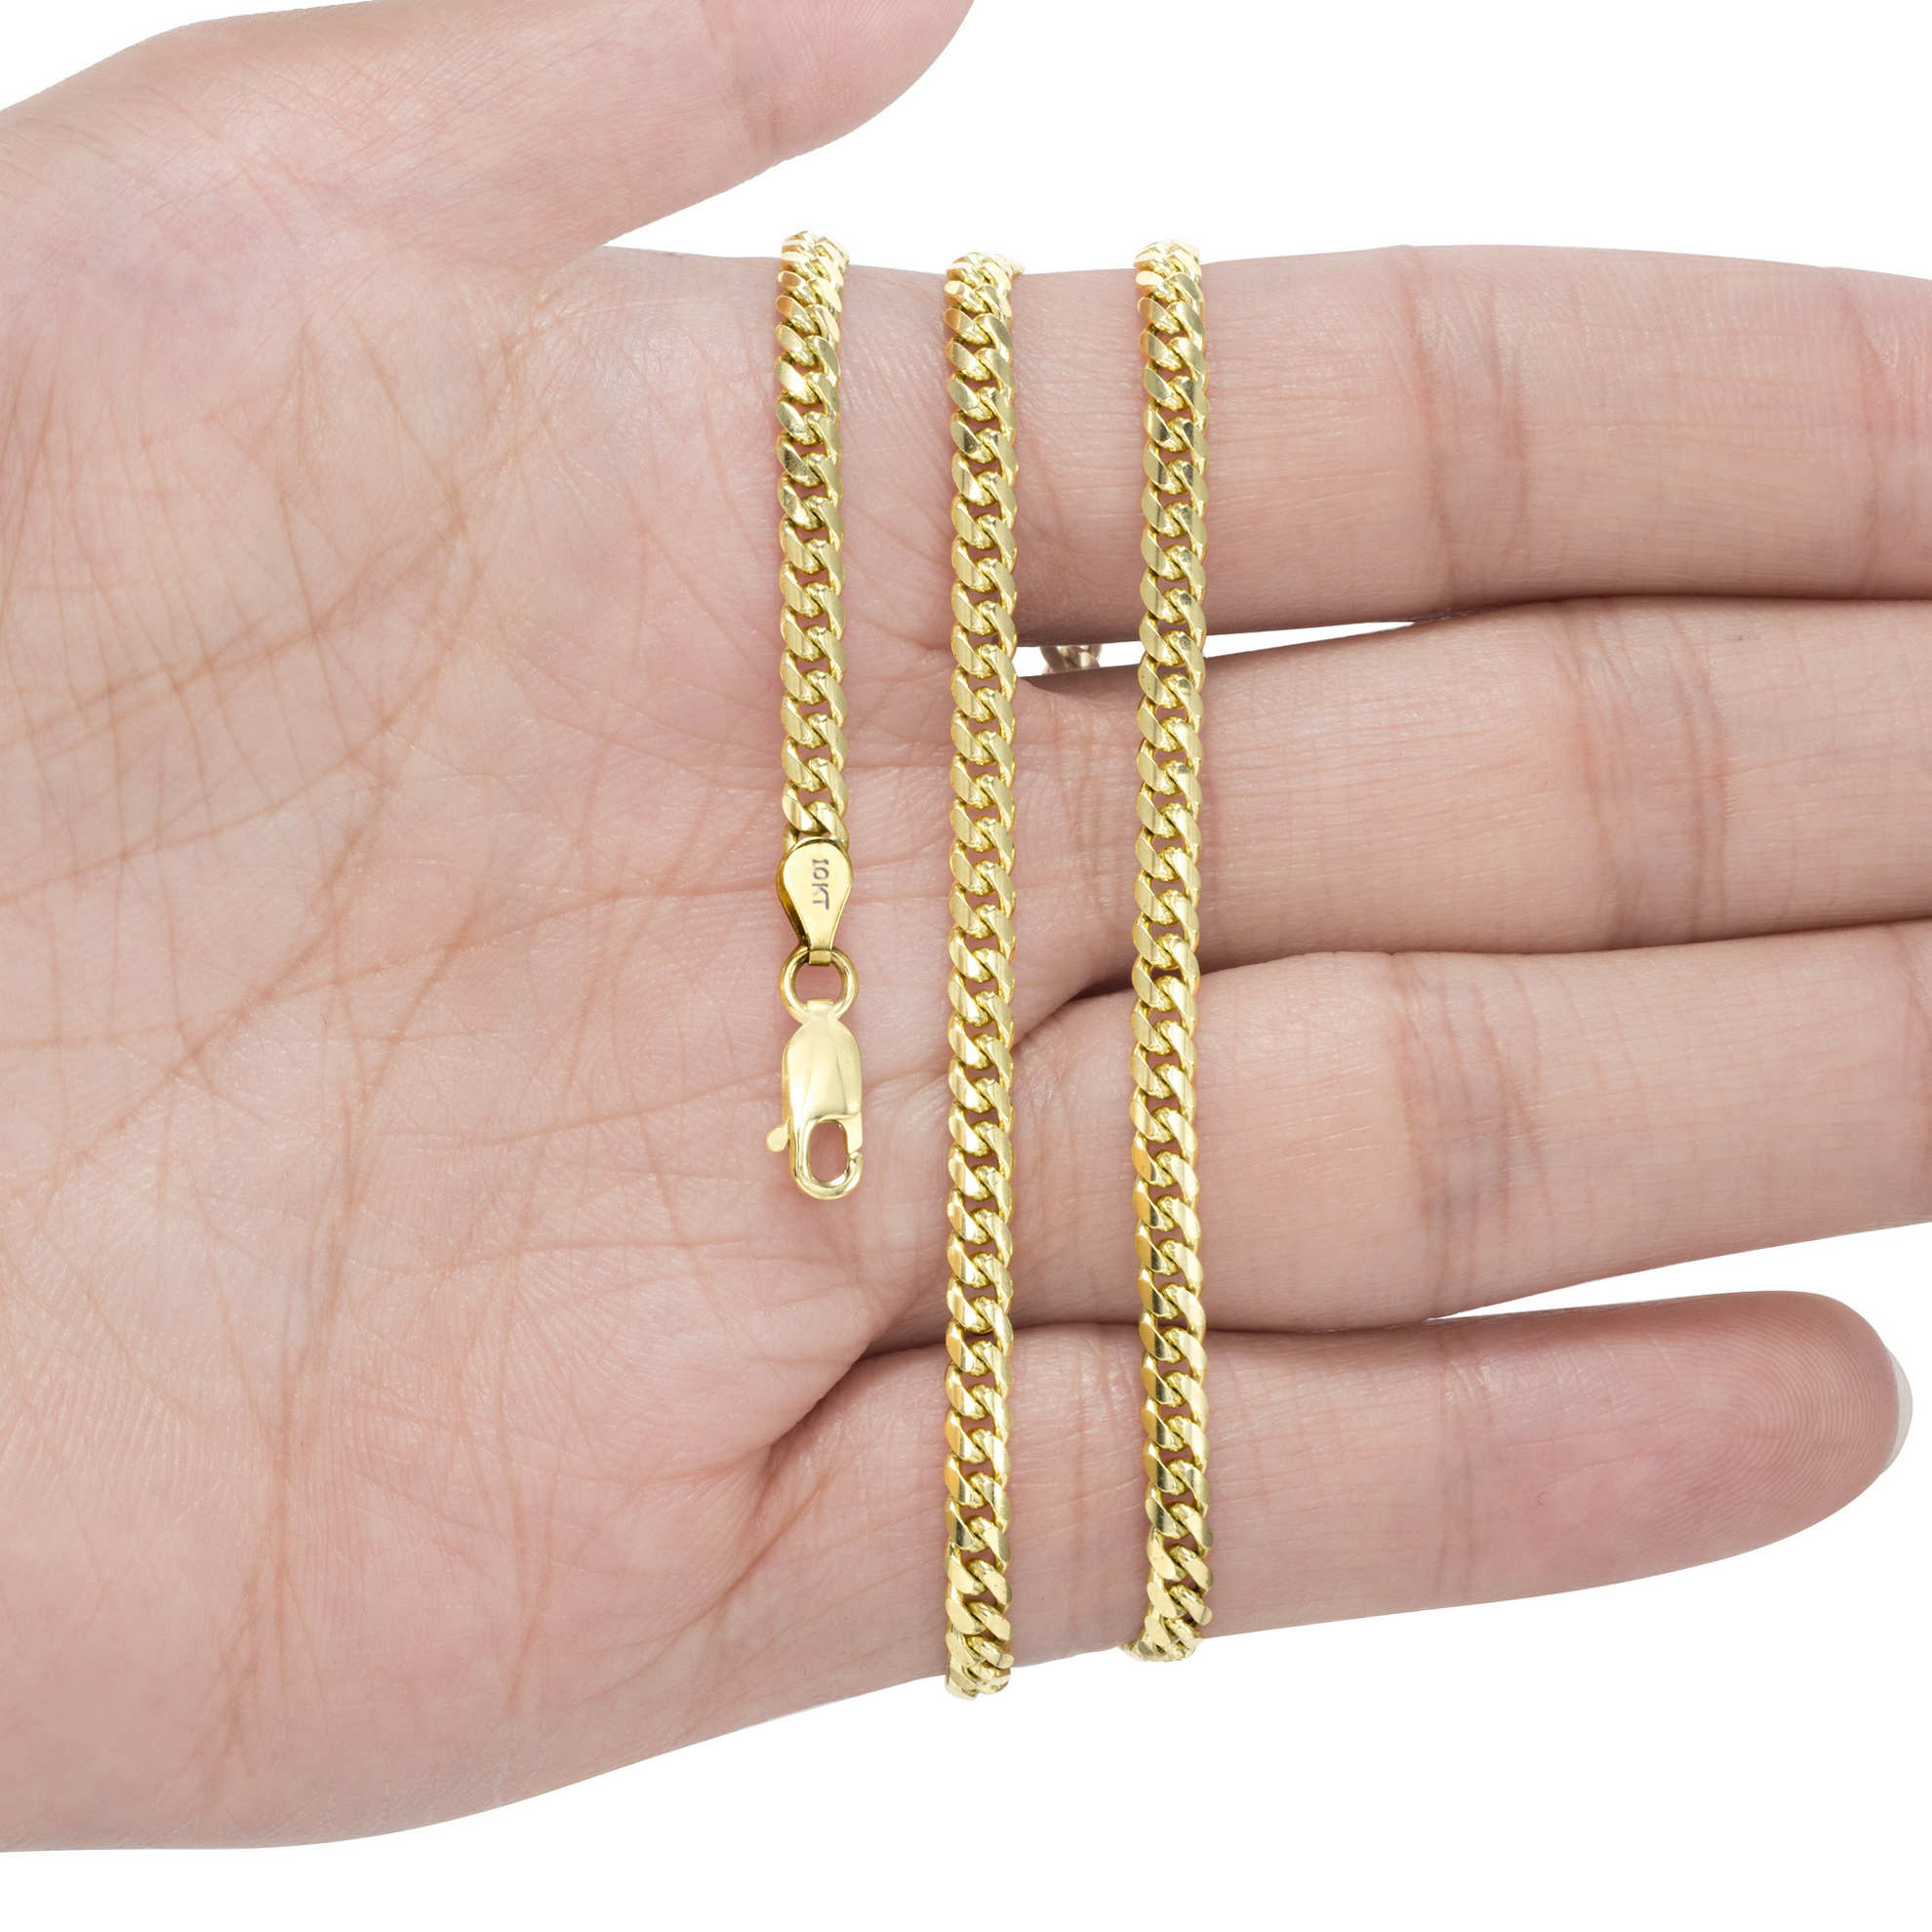 10K-Yellow-Gold-Solid-2-7mm-10mm-Miami-Cuban-Link-Chain-Necklace-Bracelet-7-034-30-034 thumbnail 16